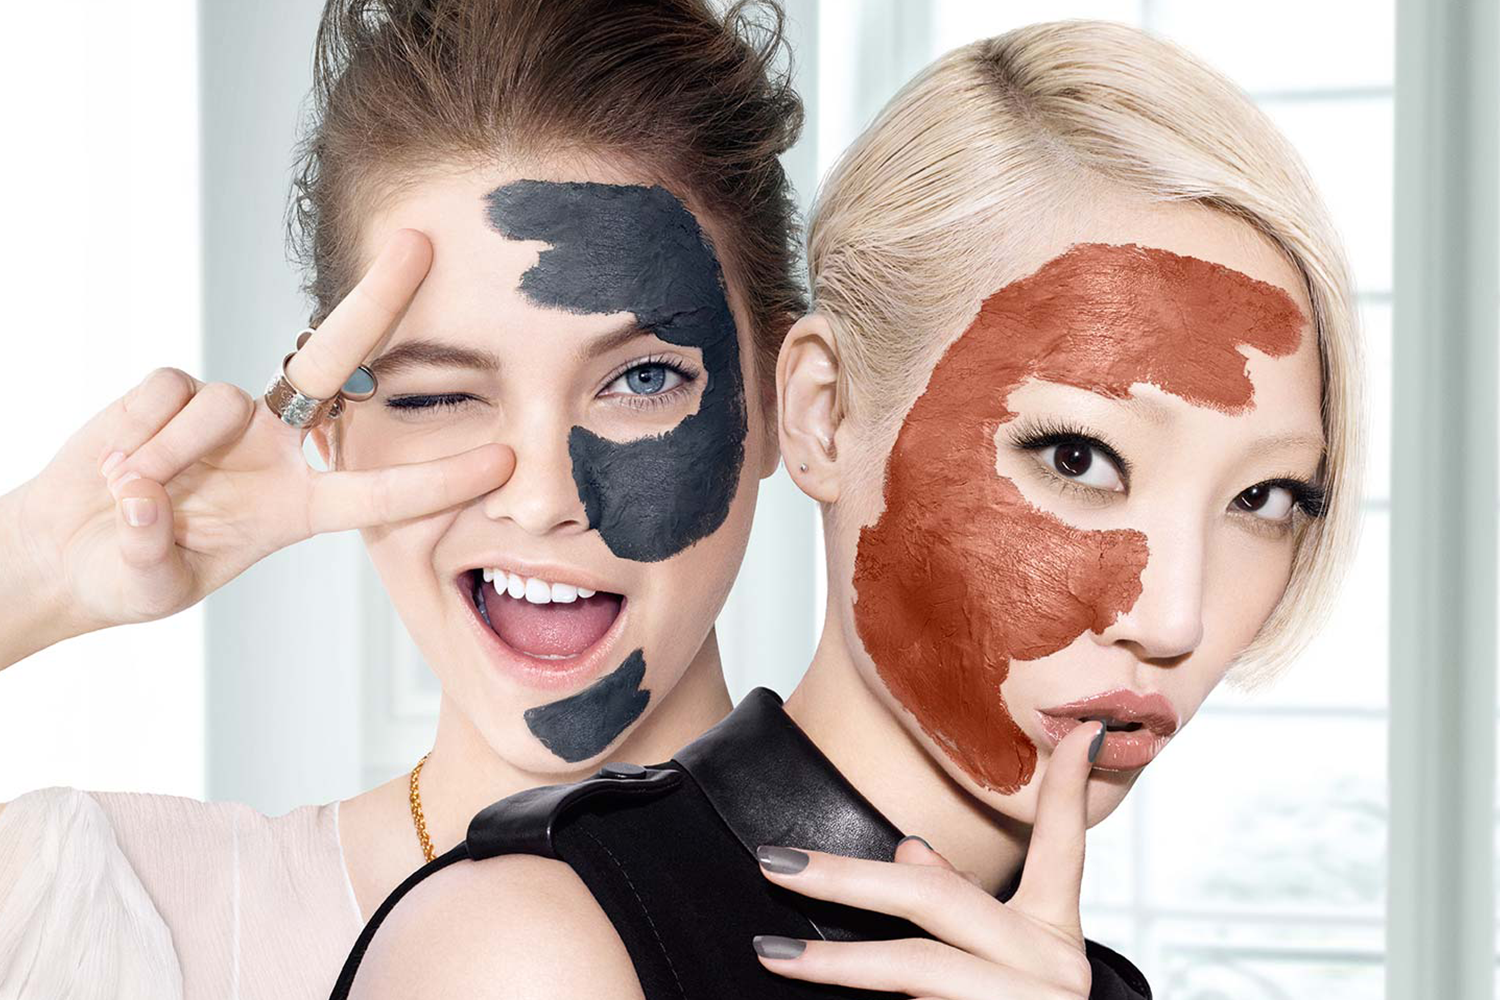 L'ORÉAL PARIS CLAY MASKS - 2 MINUTE TRAINING